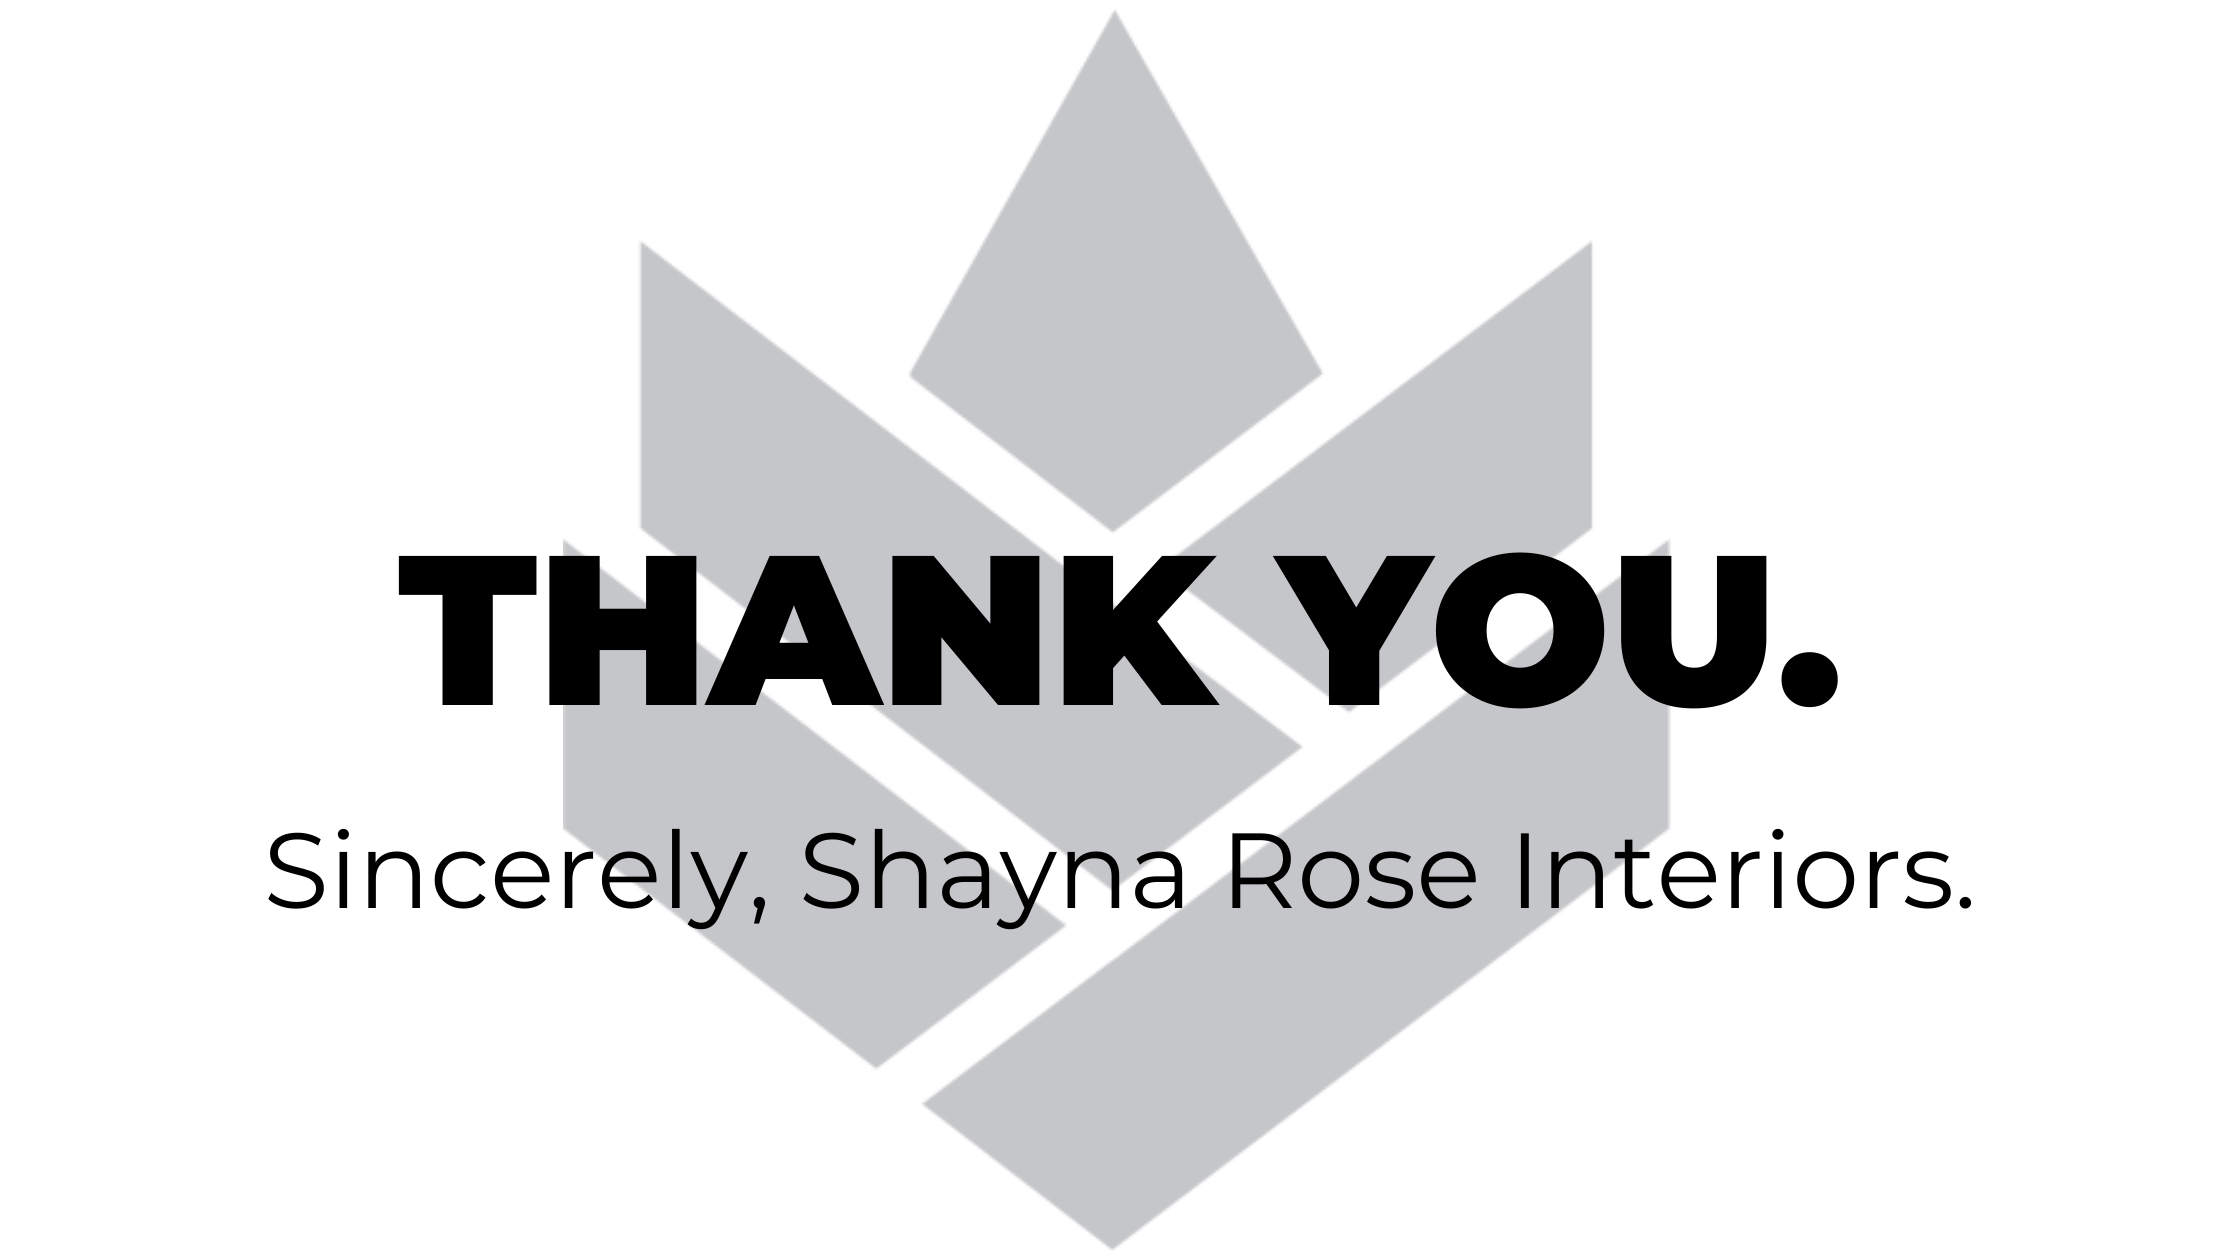 Thank you from Shayna Rose Interiors